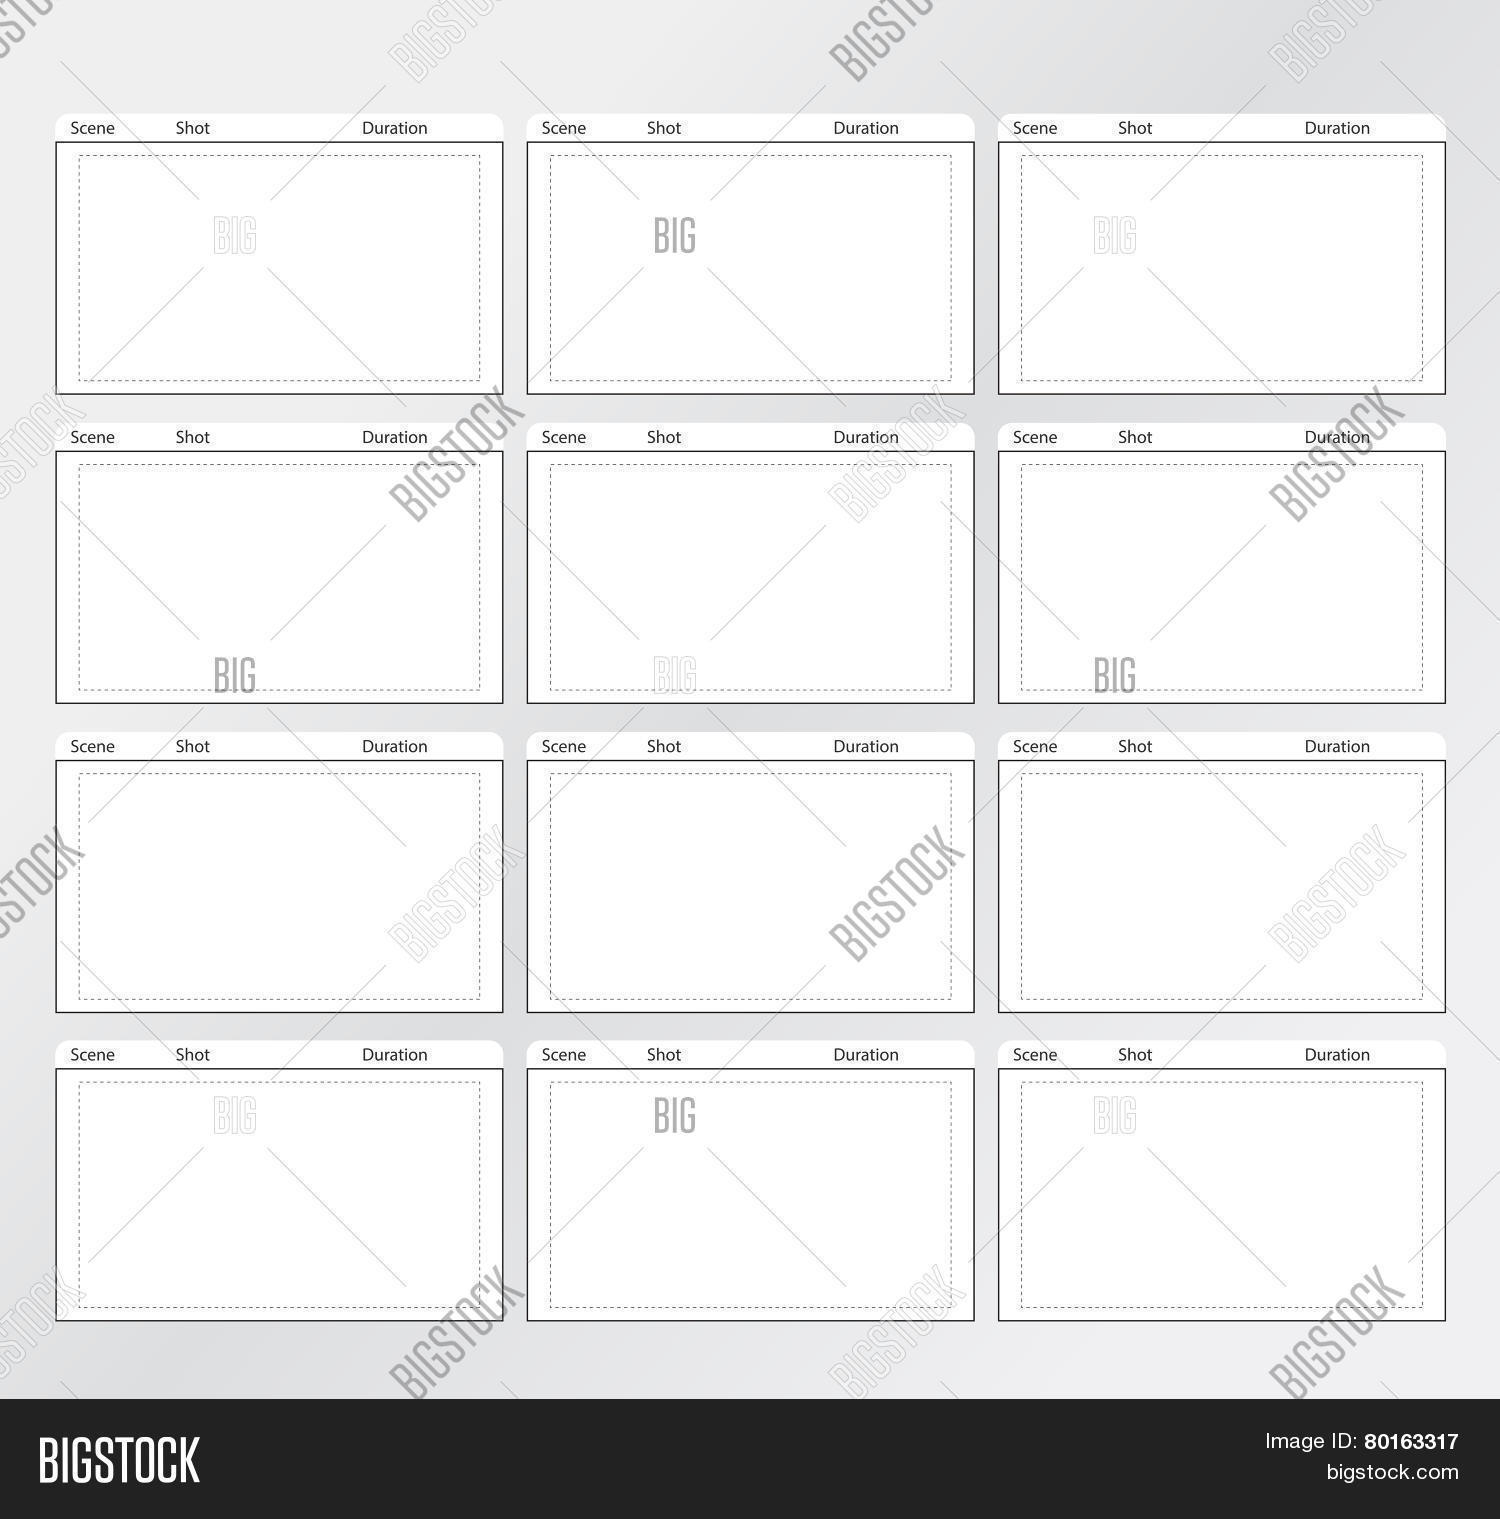 Storyboard template vector photo free trial bigstock storyboard template vertical 12 frames maxwellsz